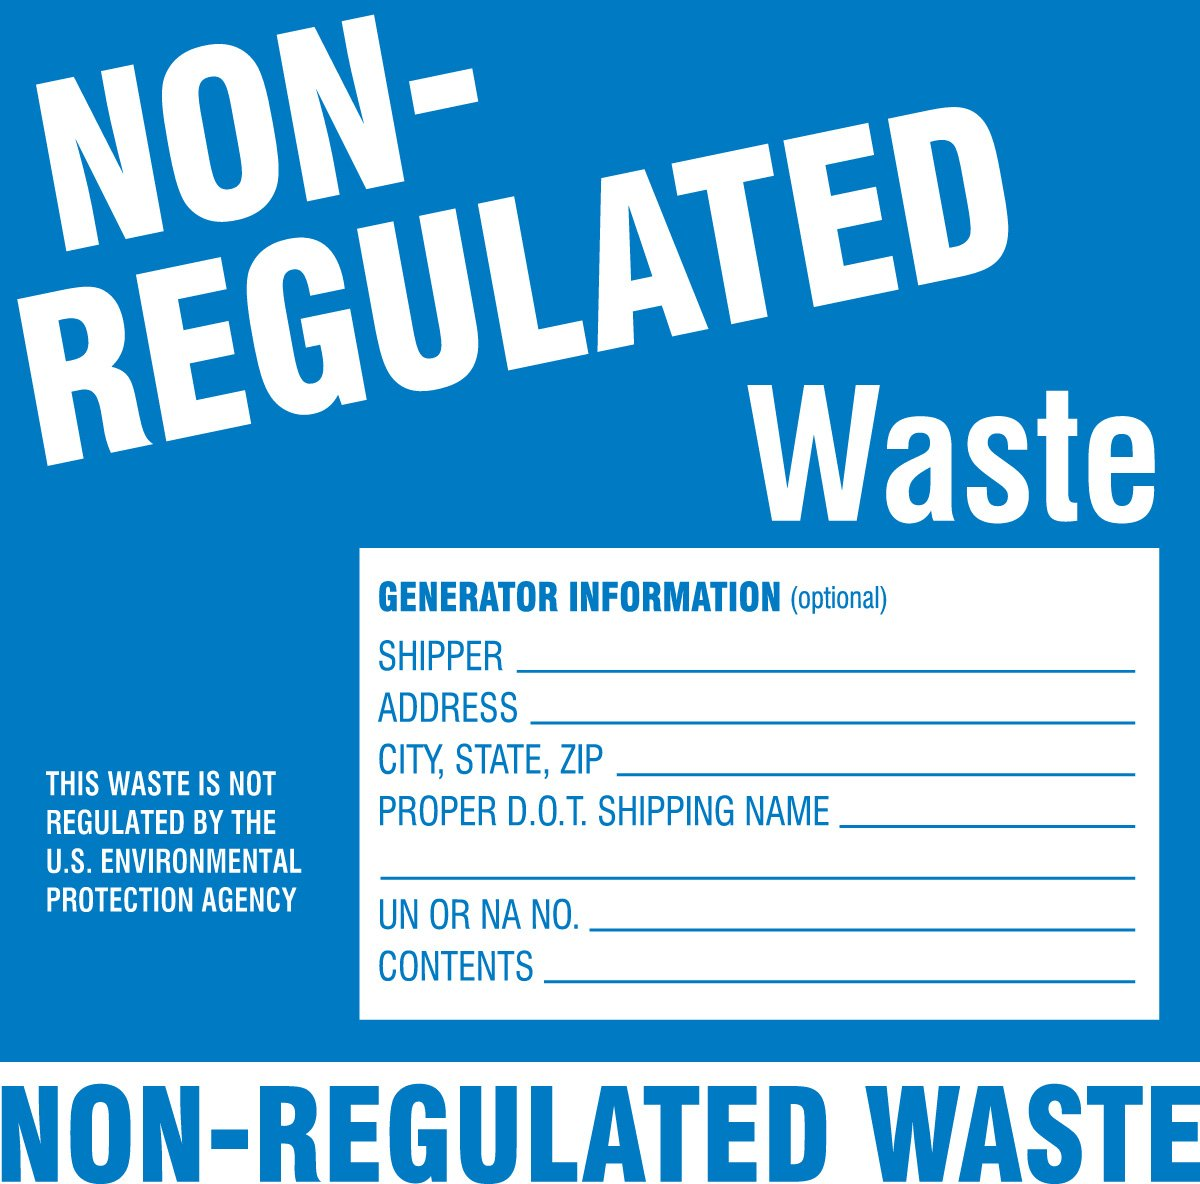 Brady 60446 PaLabels per Label Hazardous Waste Labels - Label Non-Regulated Waste , White On Blue,  6'' Height x 6'' Width,  Legend ''Non-Regulated Waste...Etc'' (100 Labels per Package)